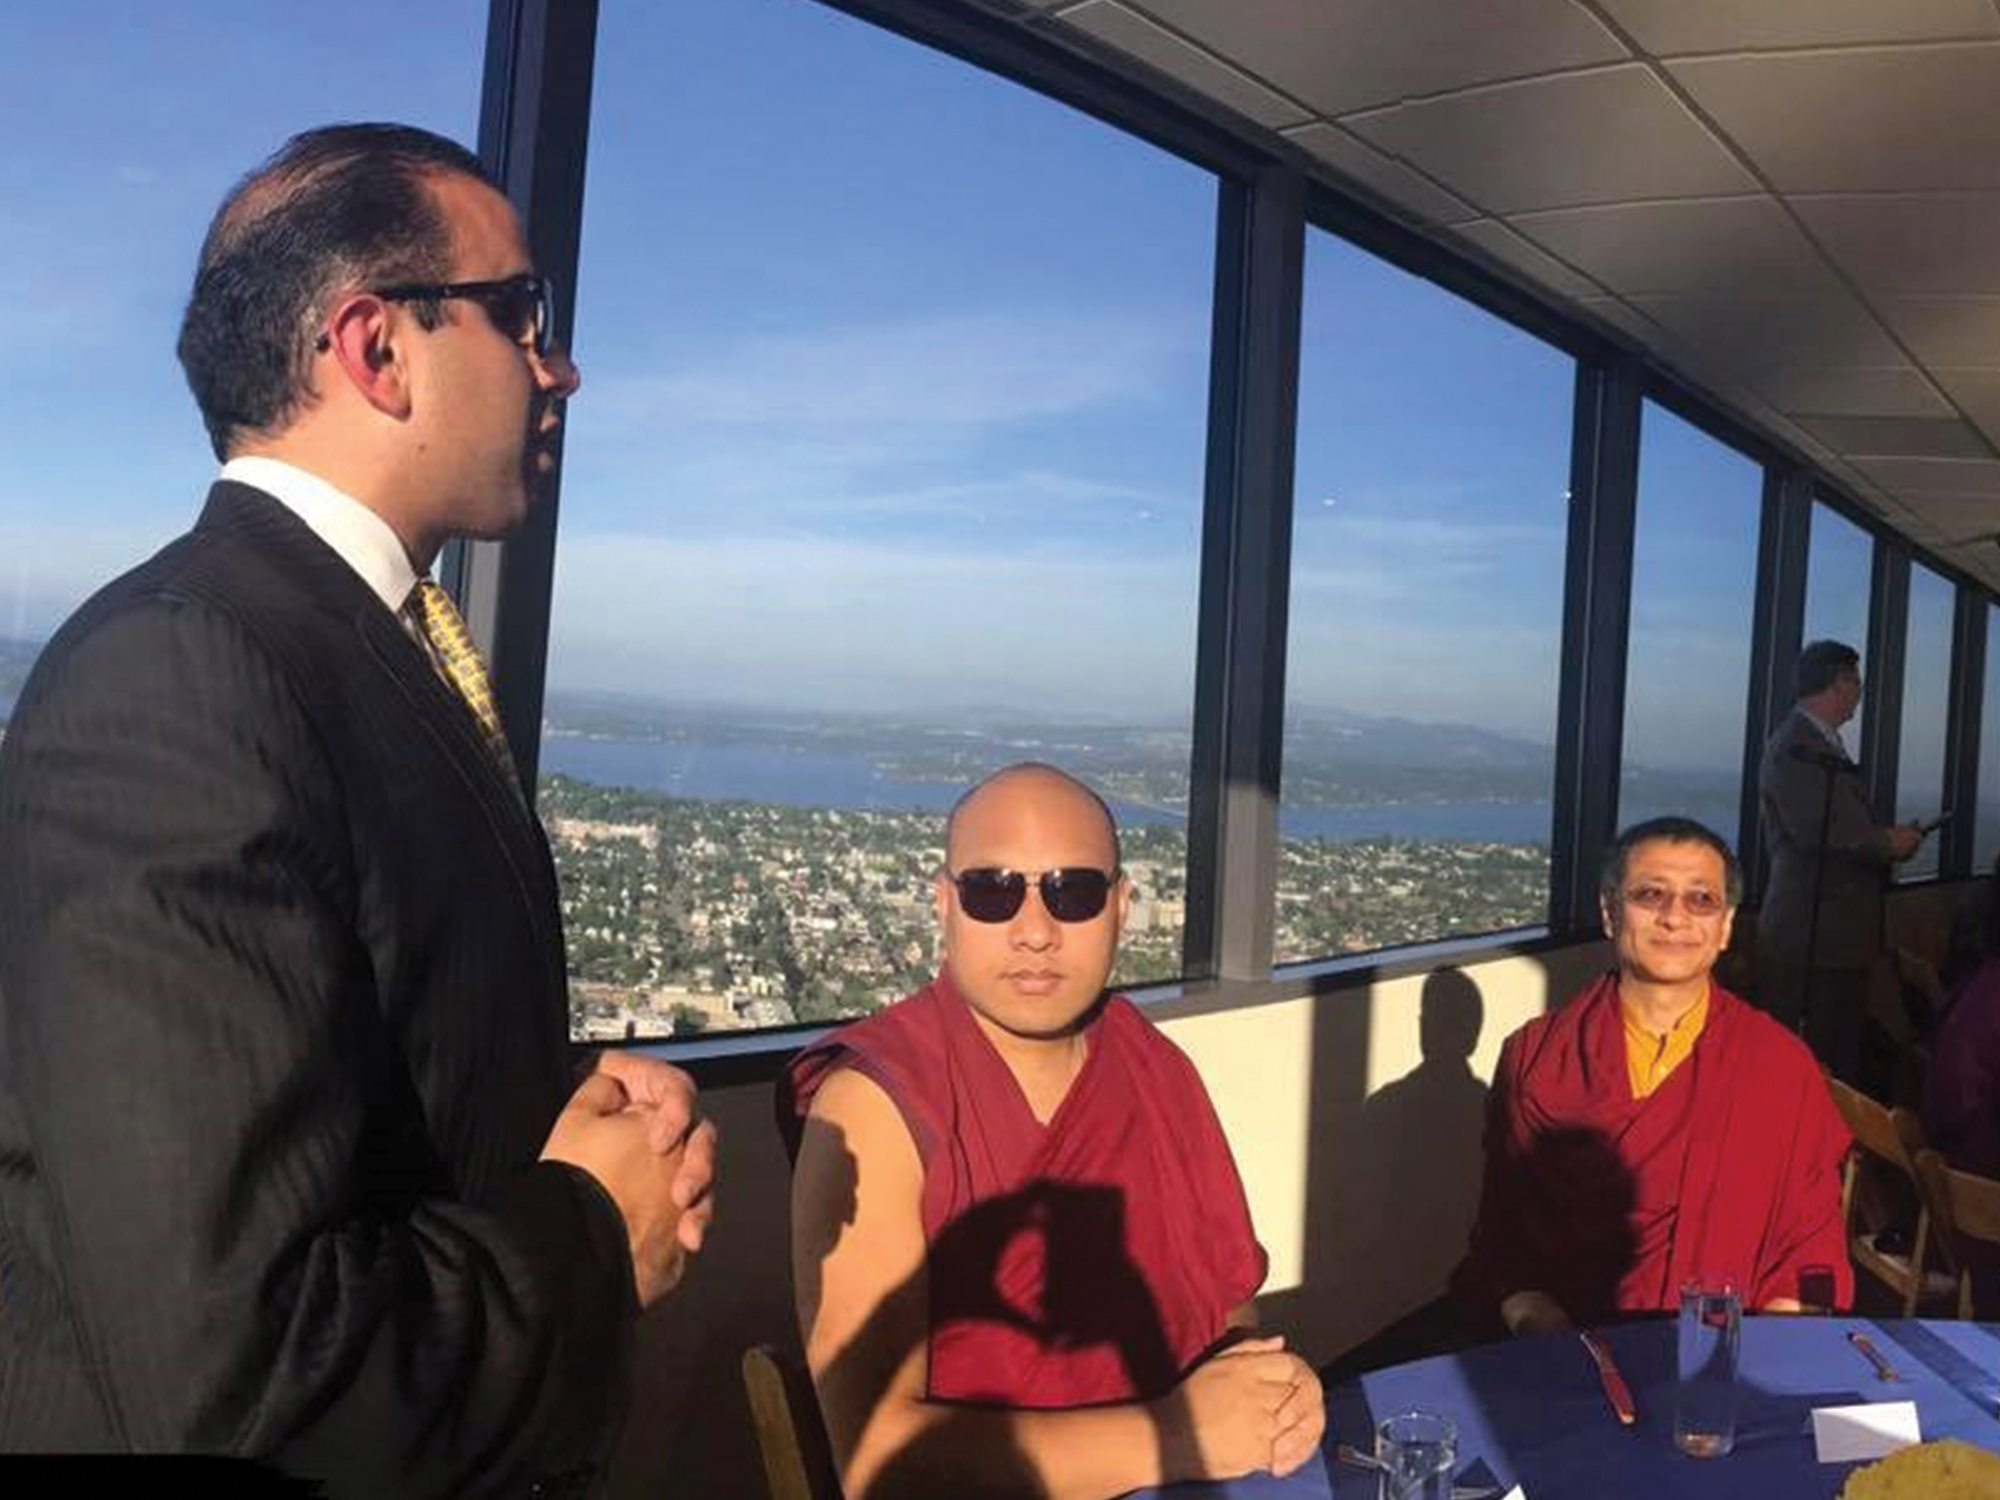 Lt. Governor Welcomes His Holiness the Karmapa to Washington State